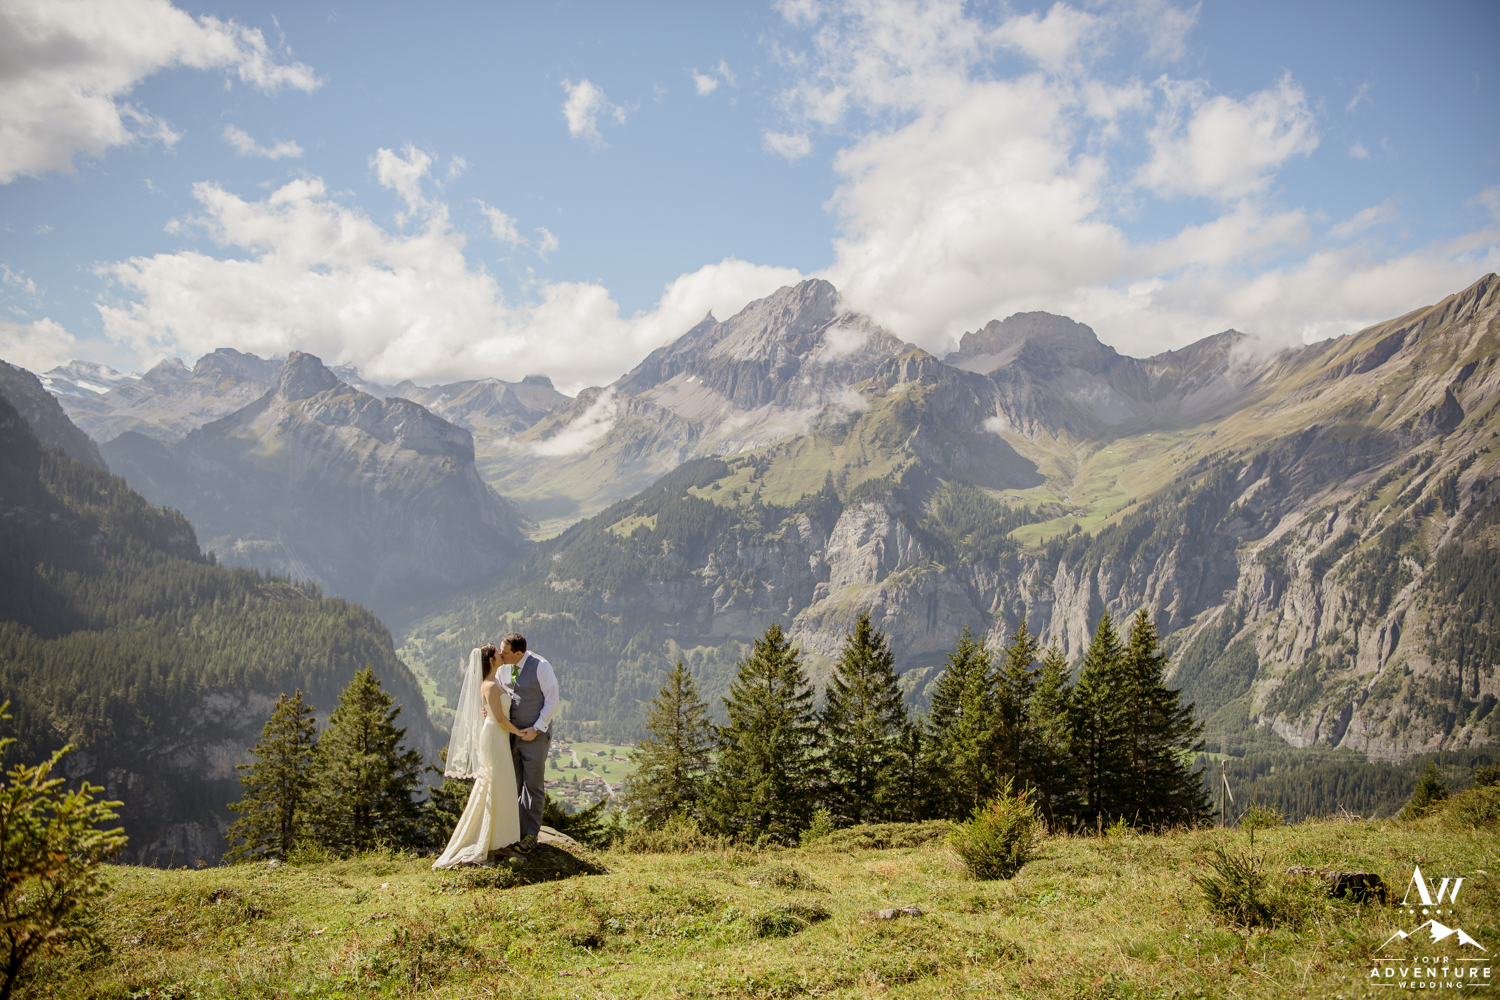 Couple kissing in front of the Swiss Alps